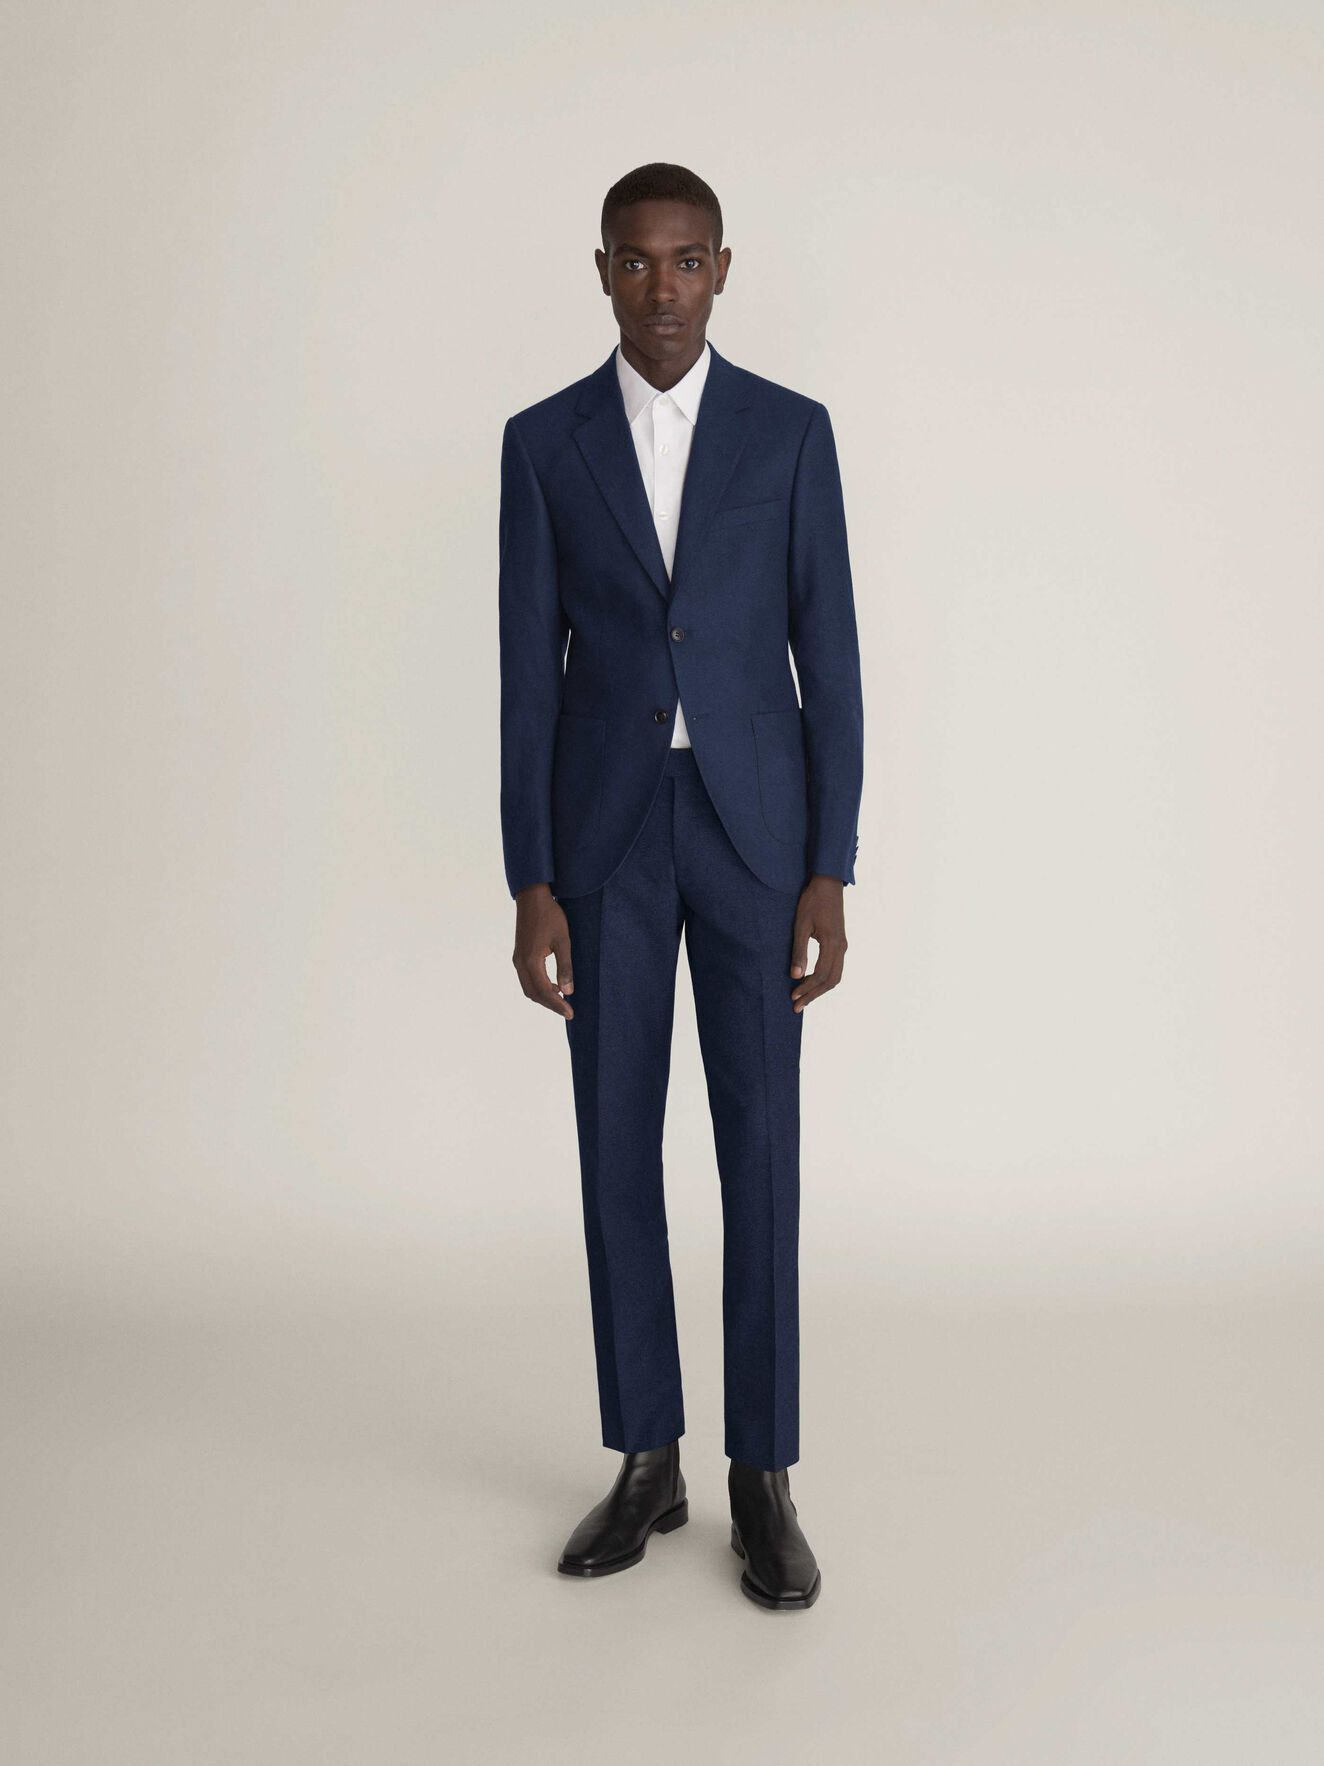 Jamot Blazer in Royal Blue from Tiger of Sweden